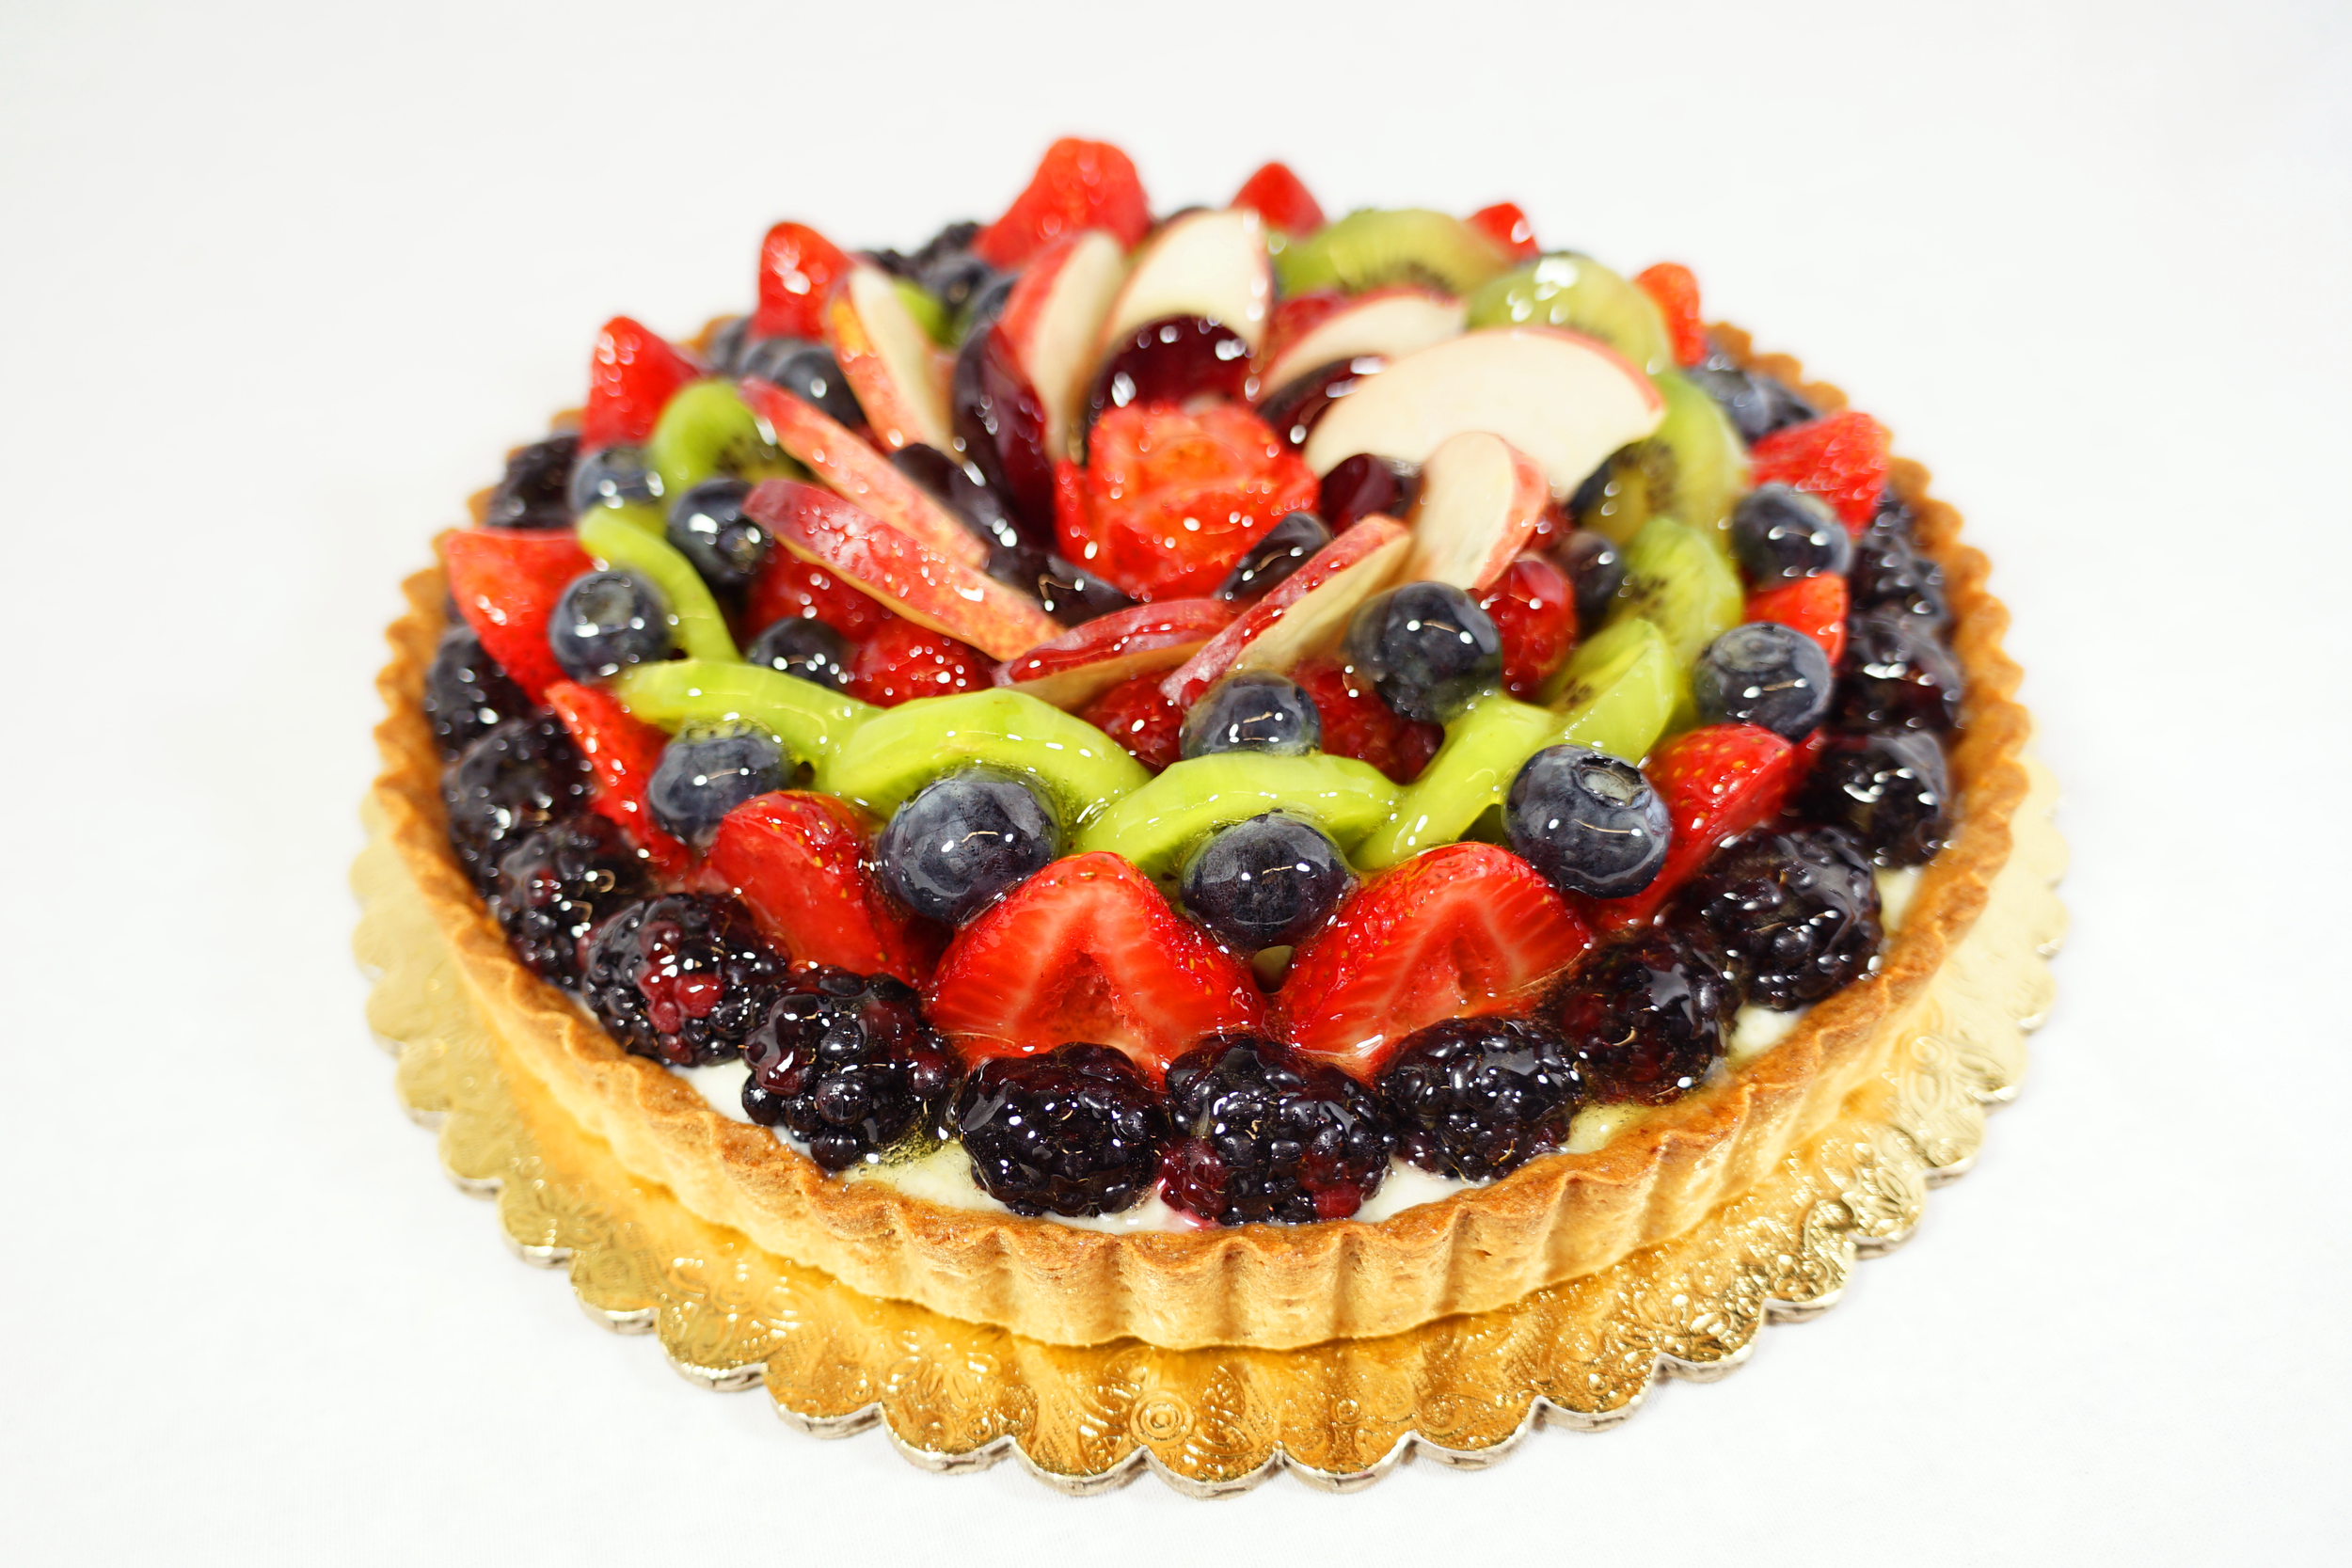 Mixed Fruit - An almond pastry shell filled with mascarpone cream and raspberry coulis. Topped with assorted fruit on a marzipan strip.